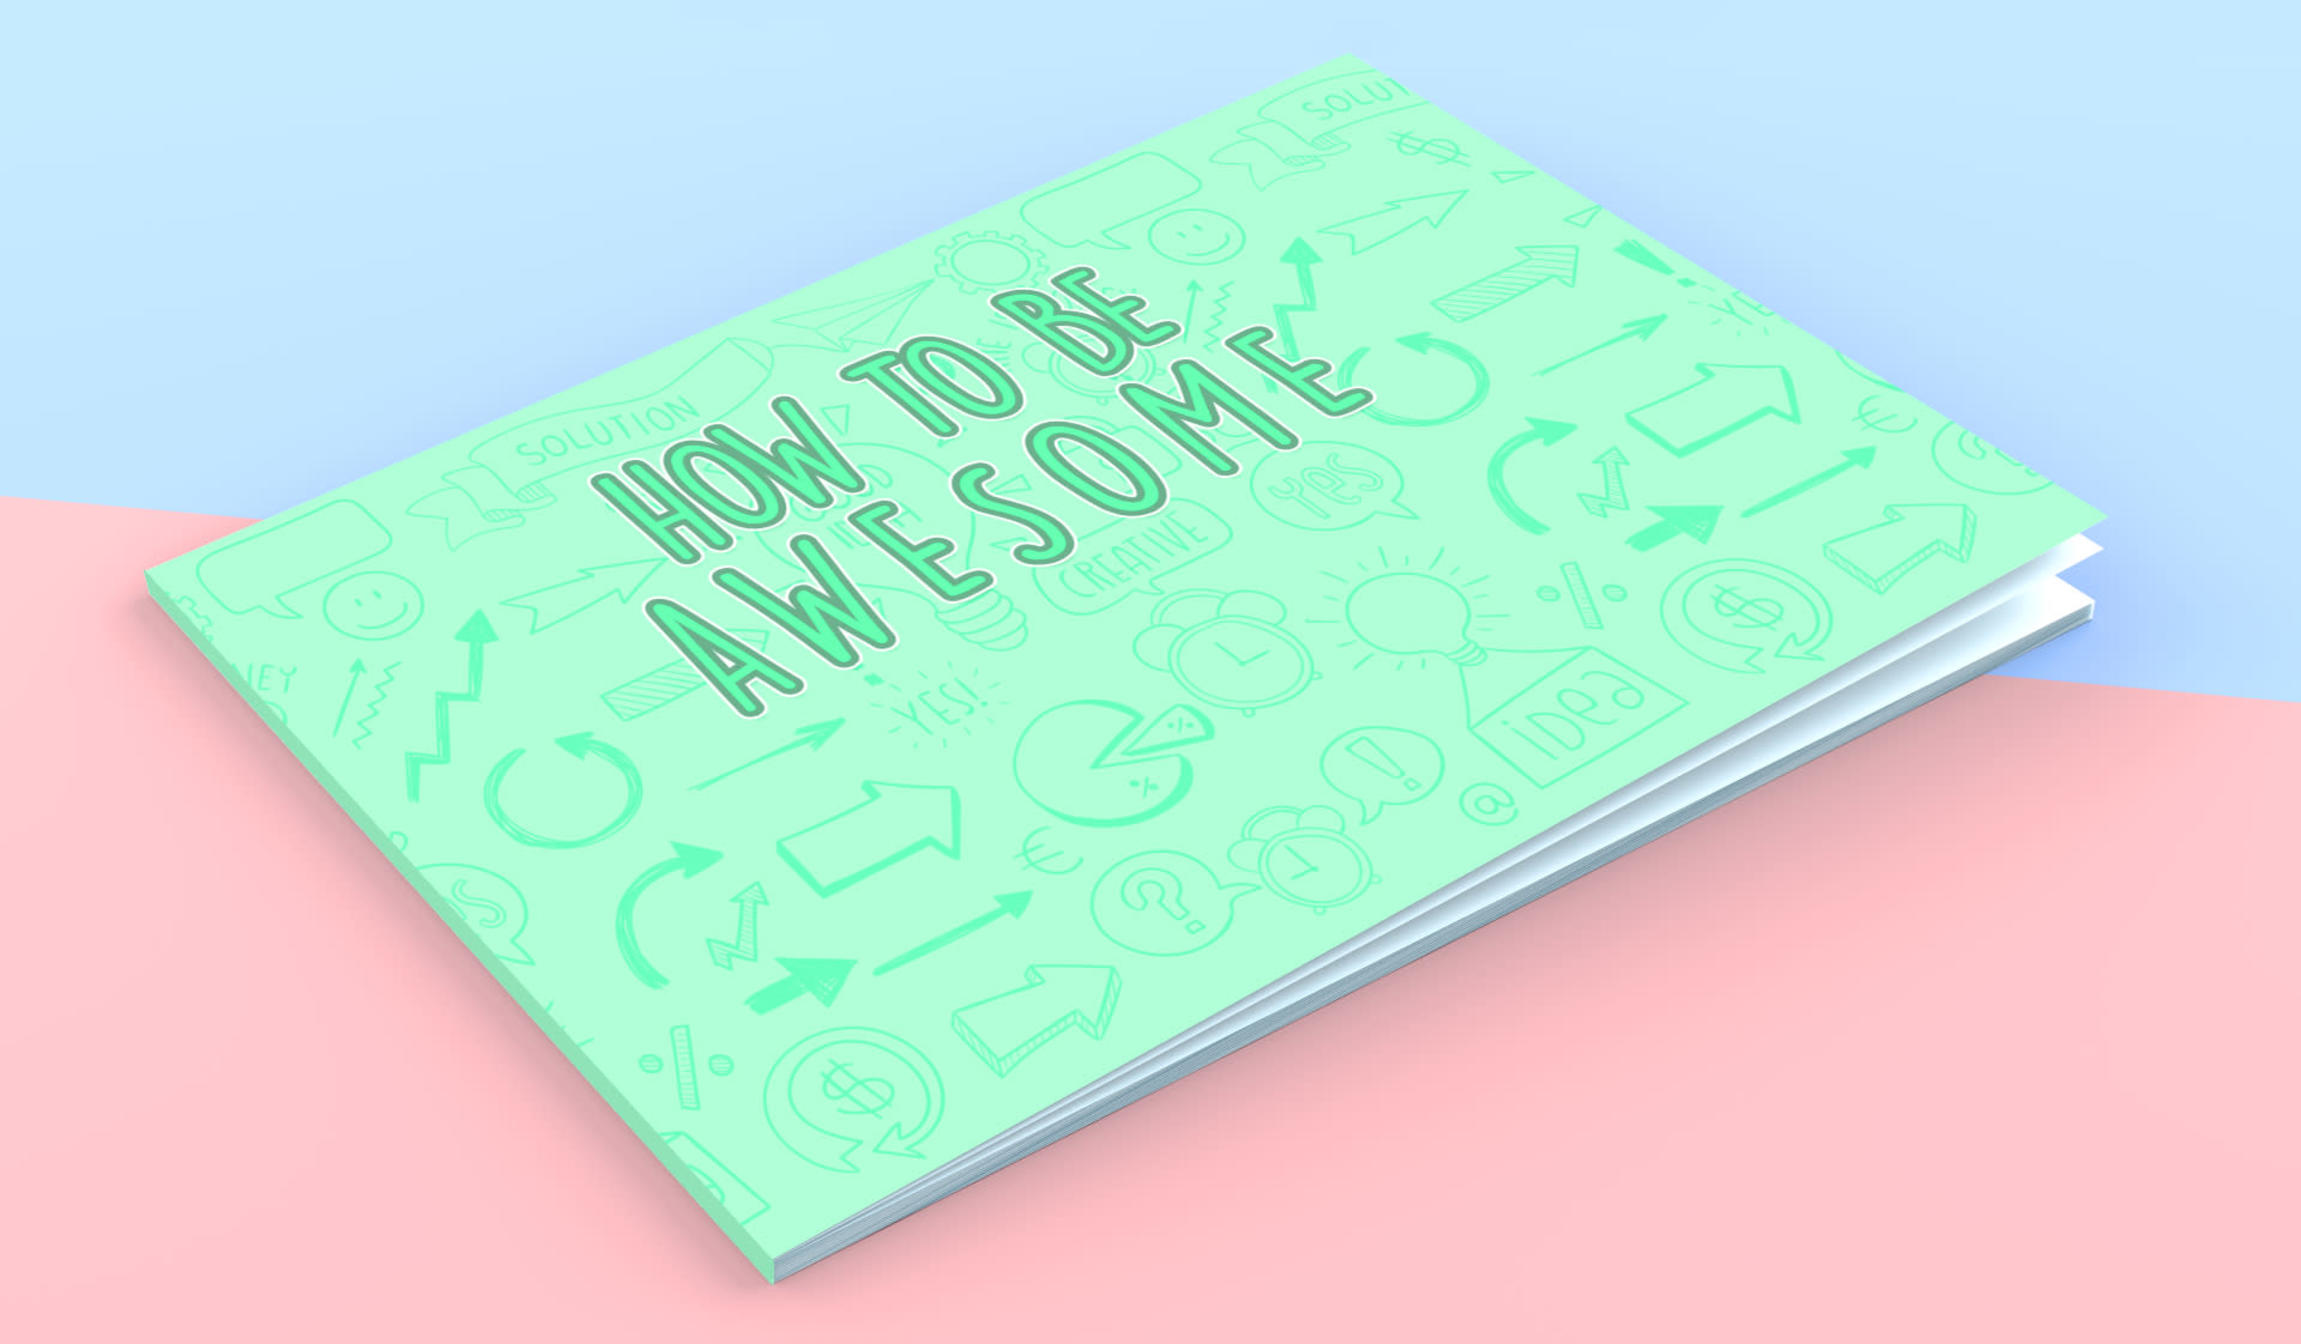 150 Free Book And Logo Mockups For Graphic Designers Basic House Wiring Books Art Mockup